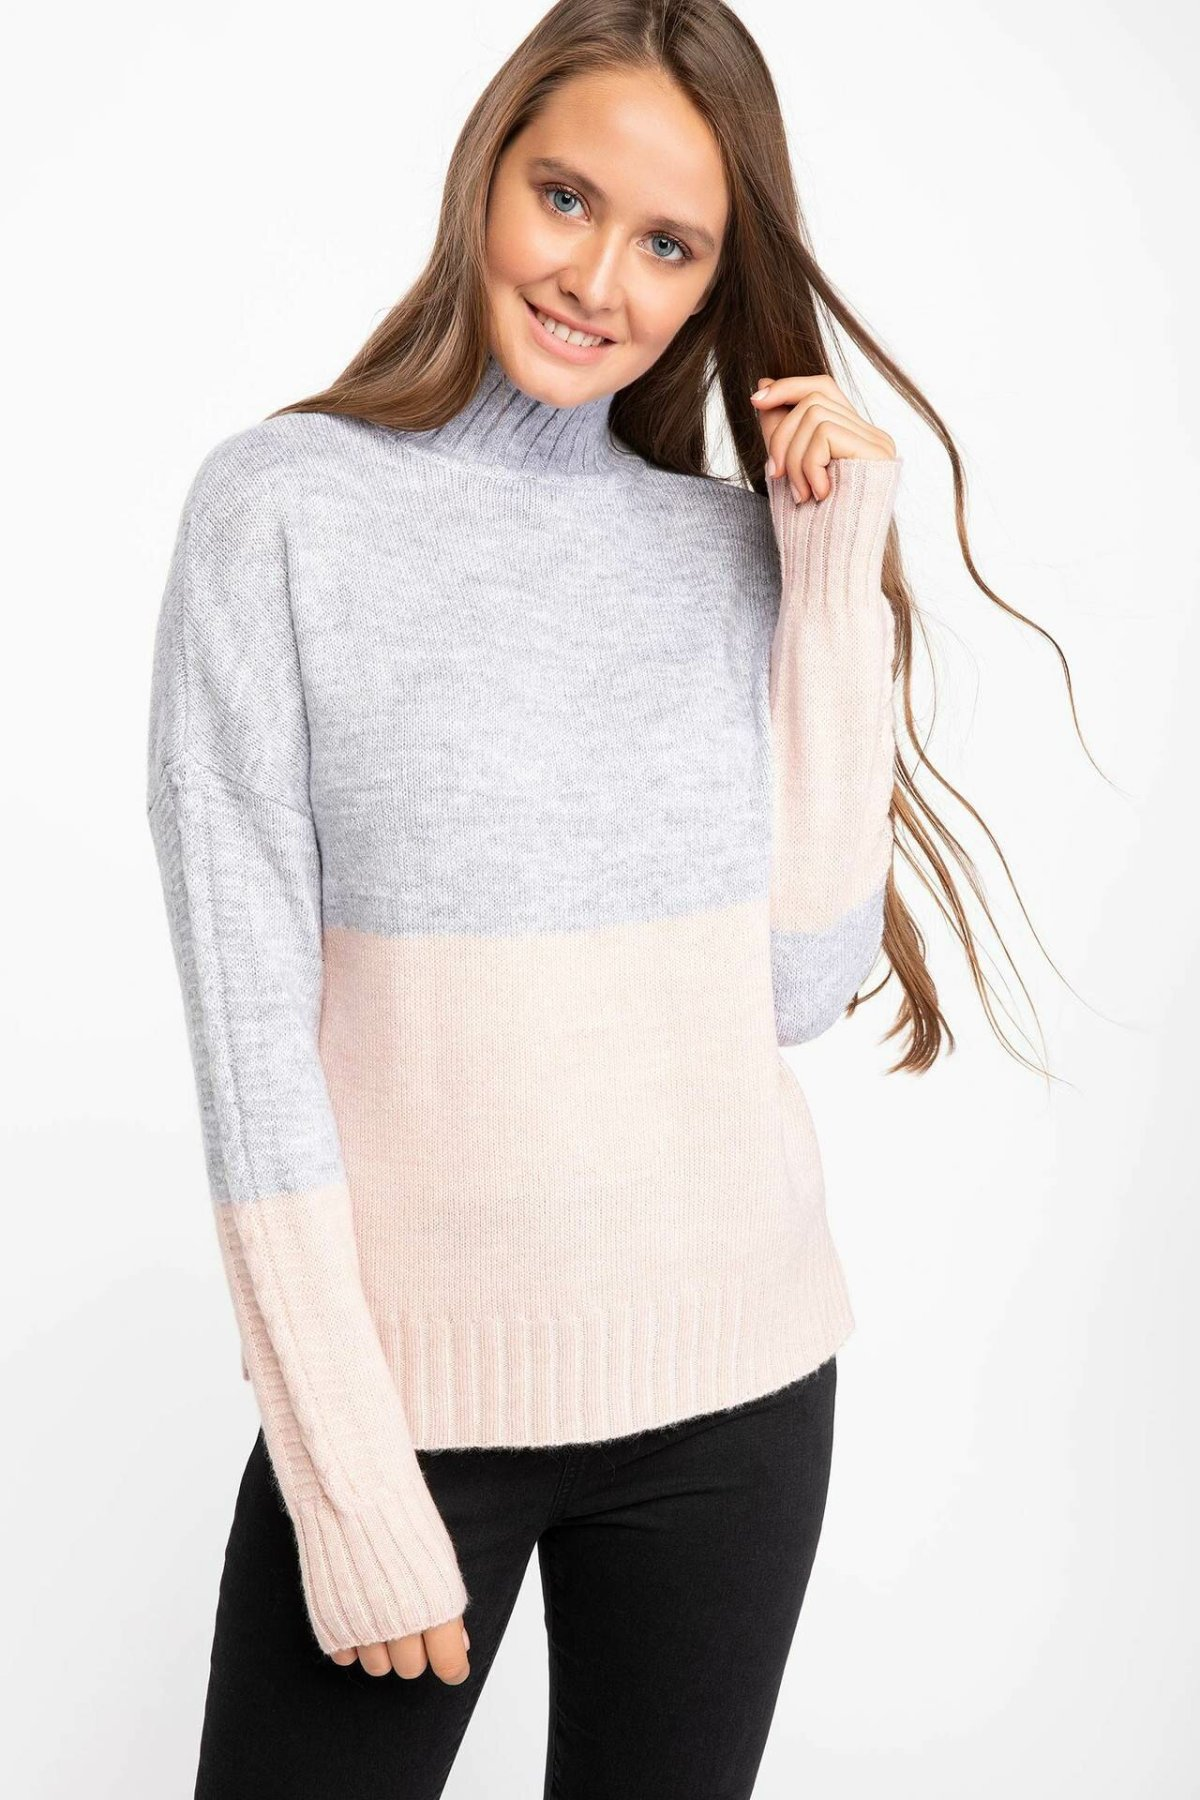 DeFacto Woman Simple Turtleneck Pullovers Casual Long Sleeves Pullovers Loose Women Autumn New -J0417AZ18WN